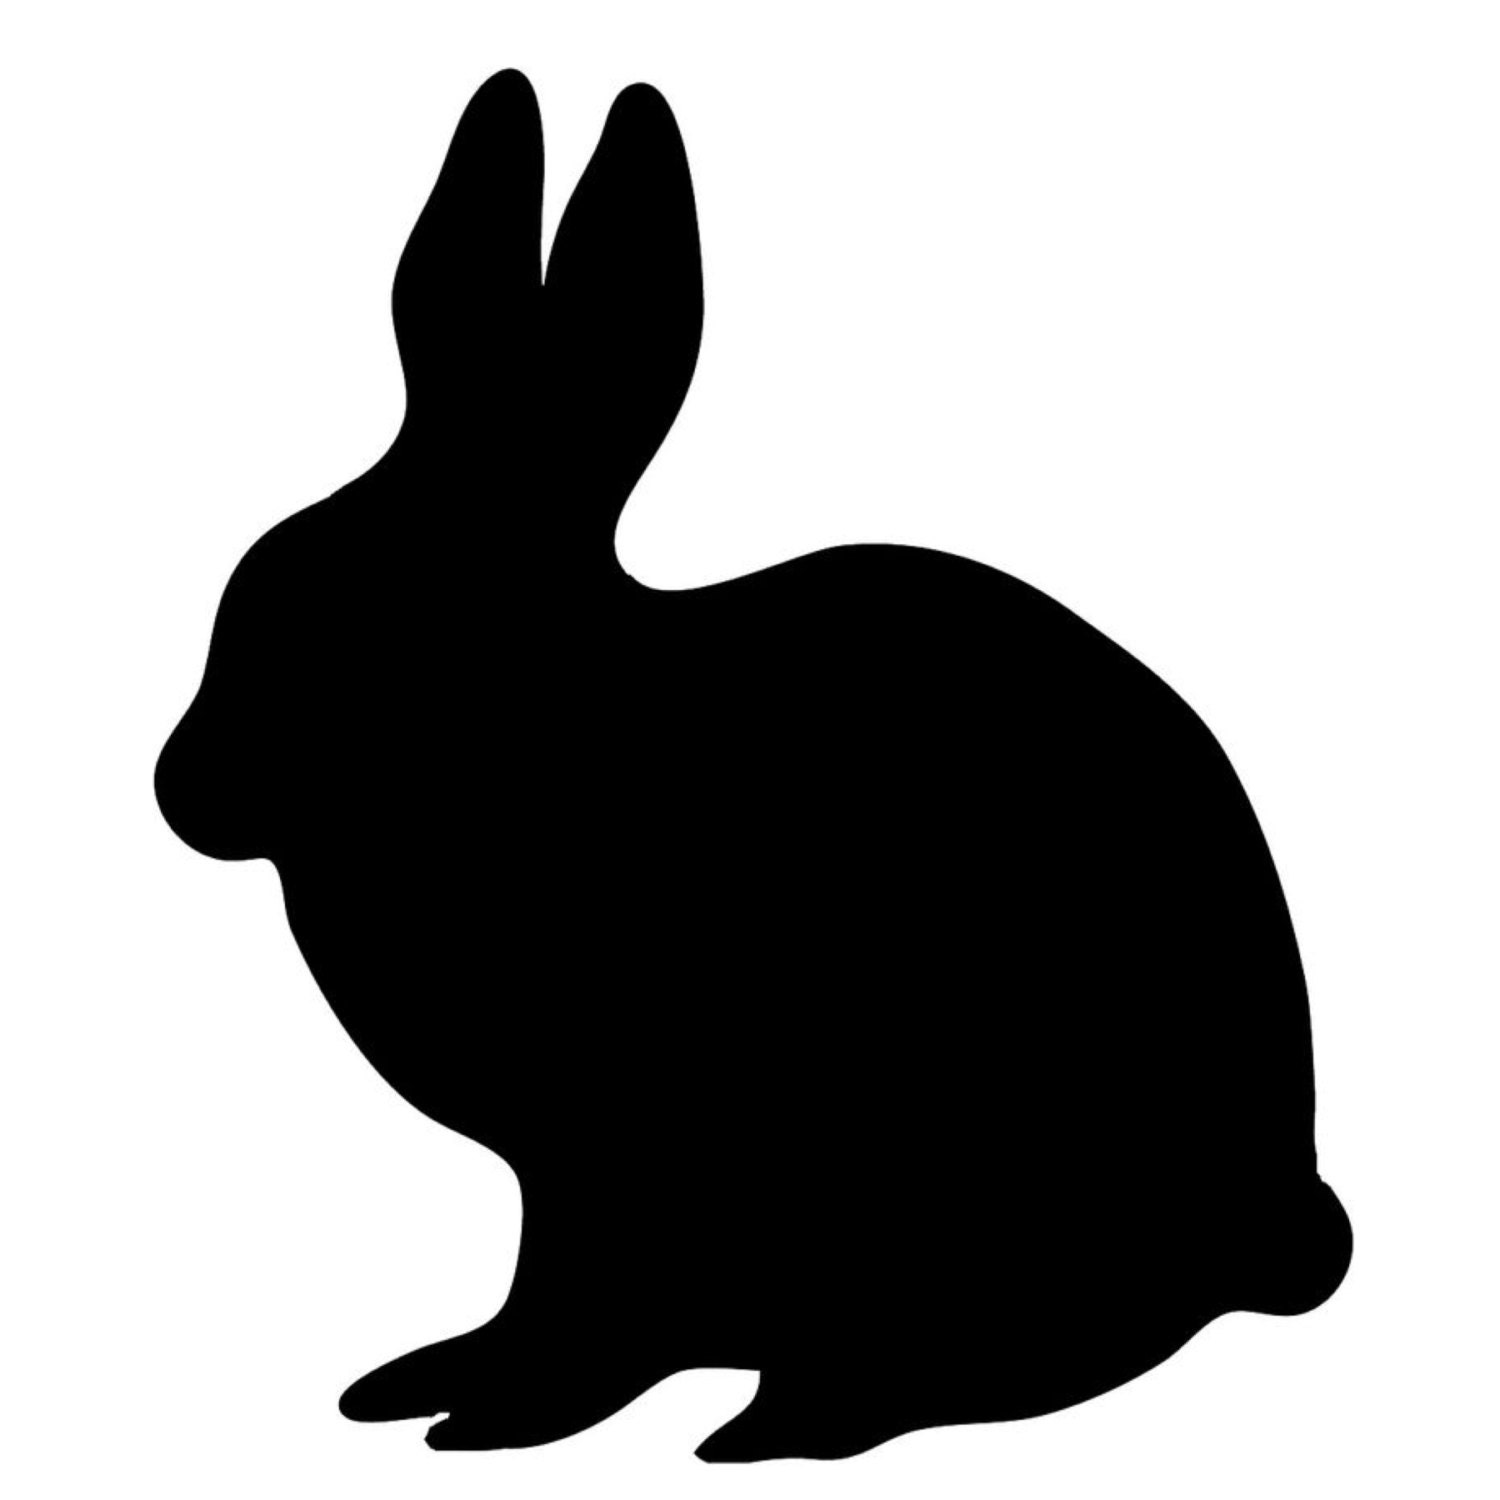 Pack Of 3 Rabbit Stencils Made From 4 Ply Mat Board 11x14